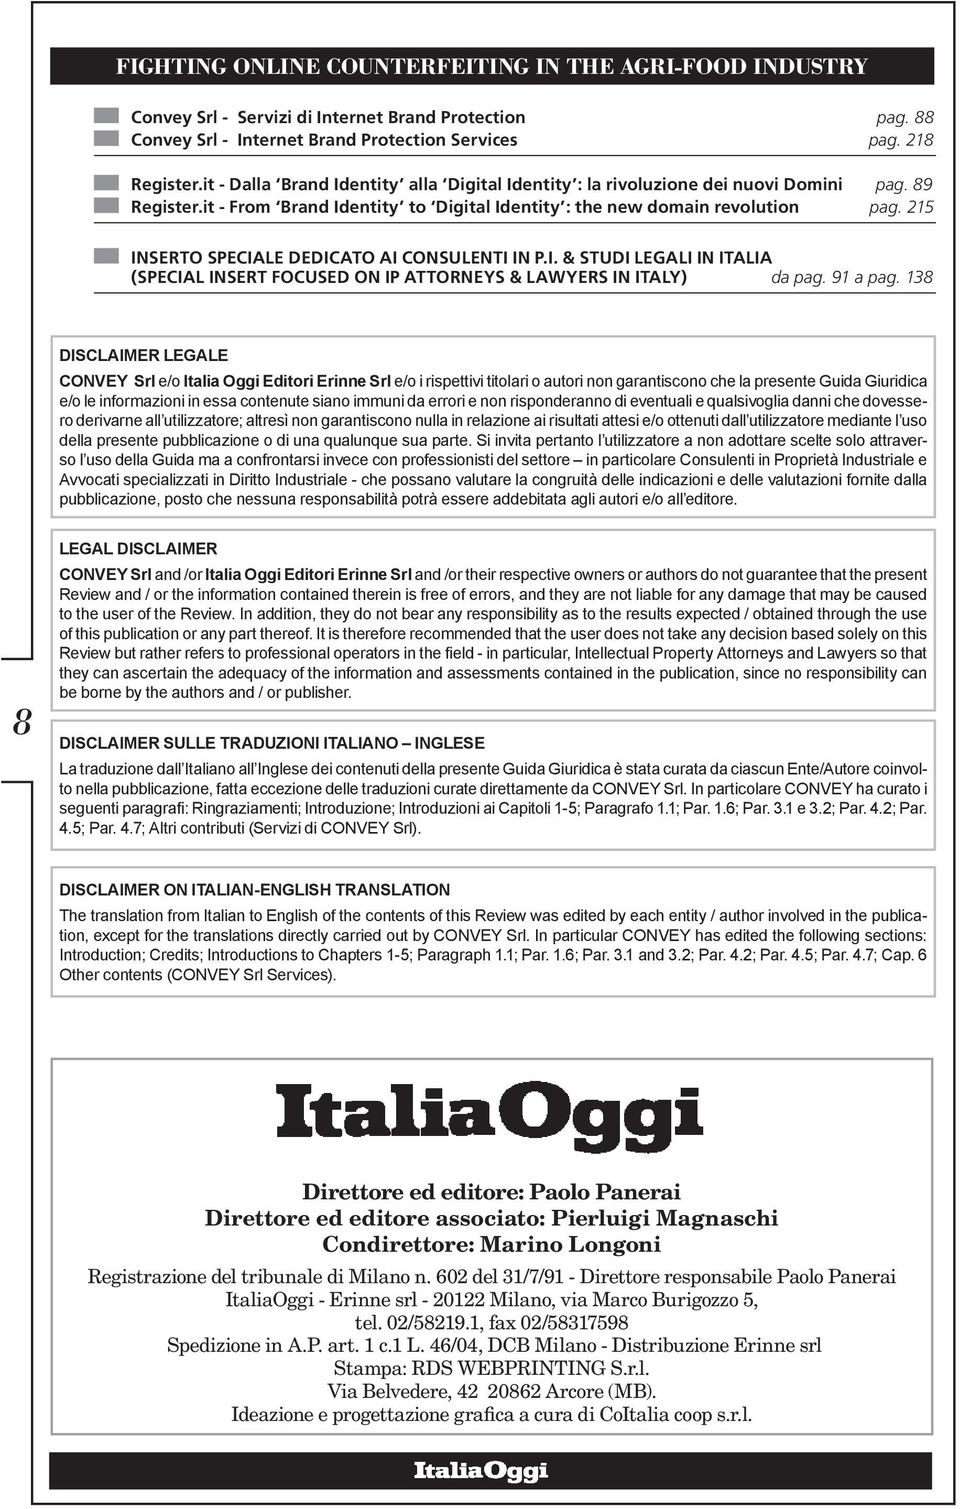 215 INSERTO SPECIALE DEDICATO AI CONSULENTI IN P.I. & STUDI LEGALI IN ITALIA (SPECIAL INSERT FOCUSED ON IP ATTORNEYS & LAWYERS IN ITALY) da pag. 91 a pag.